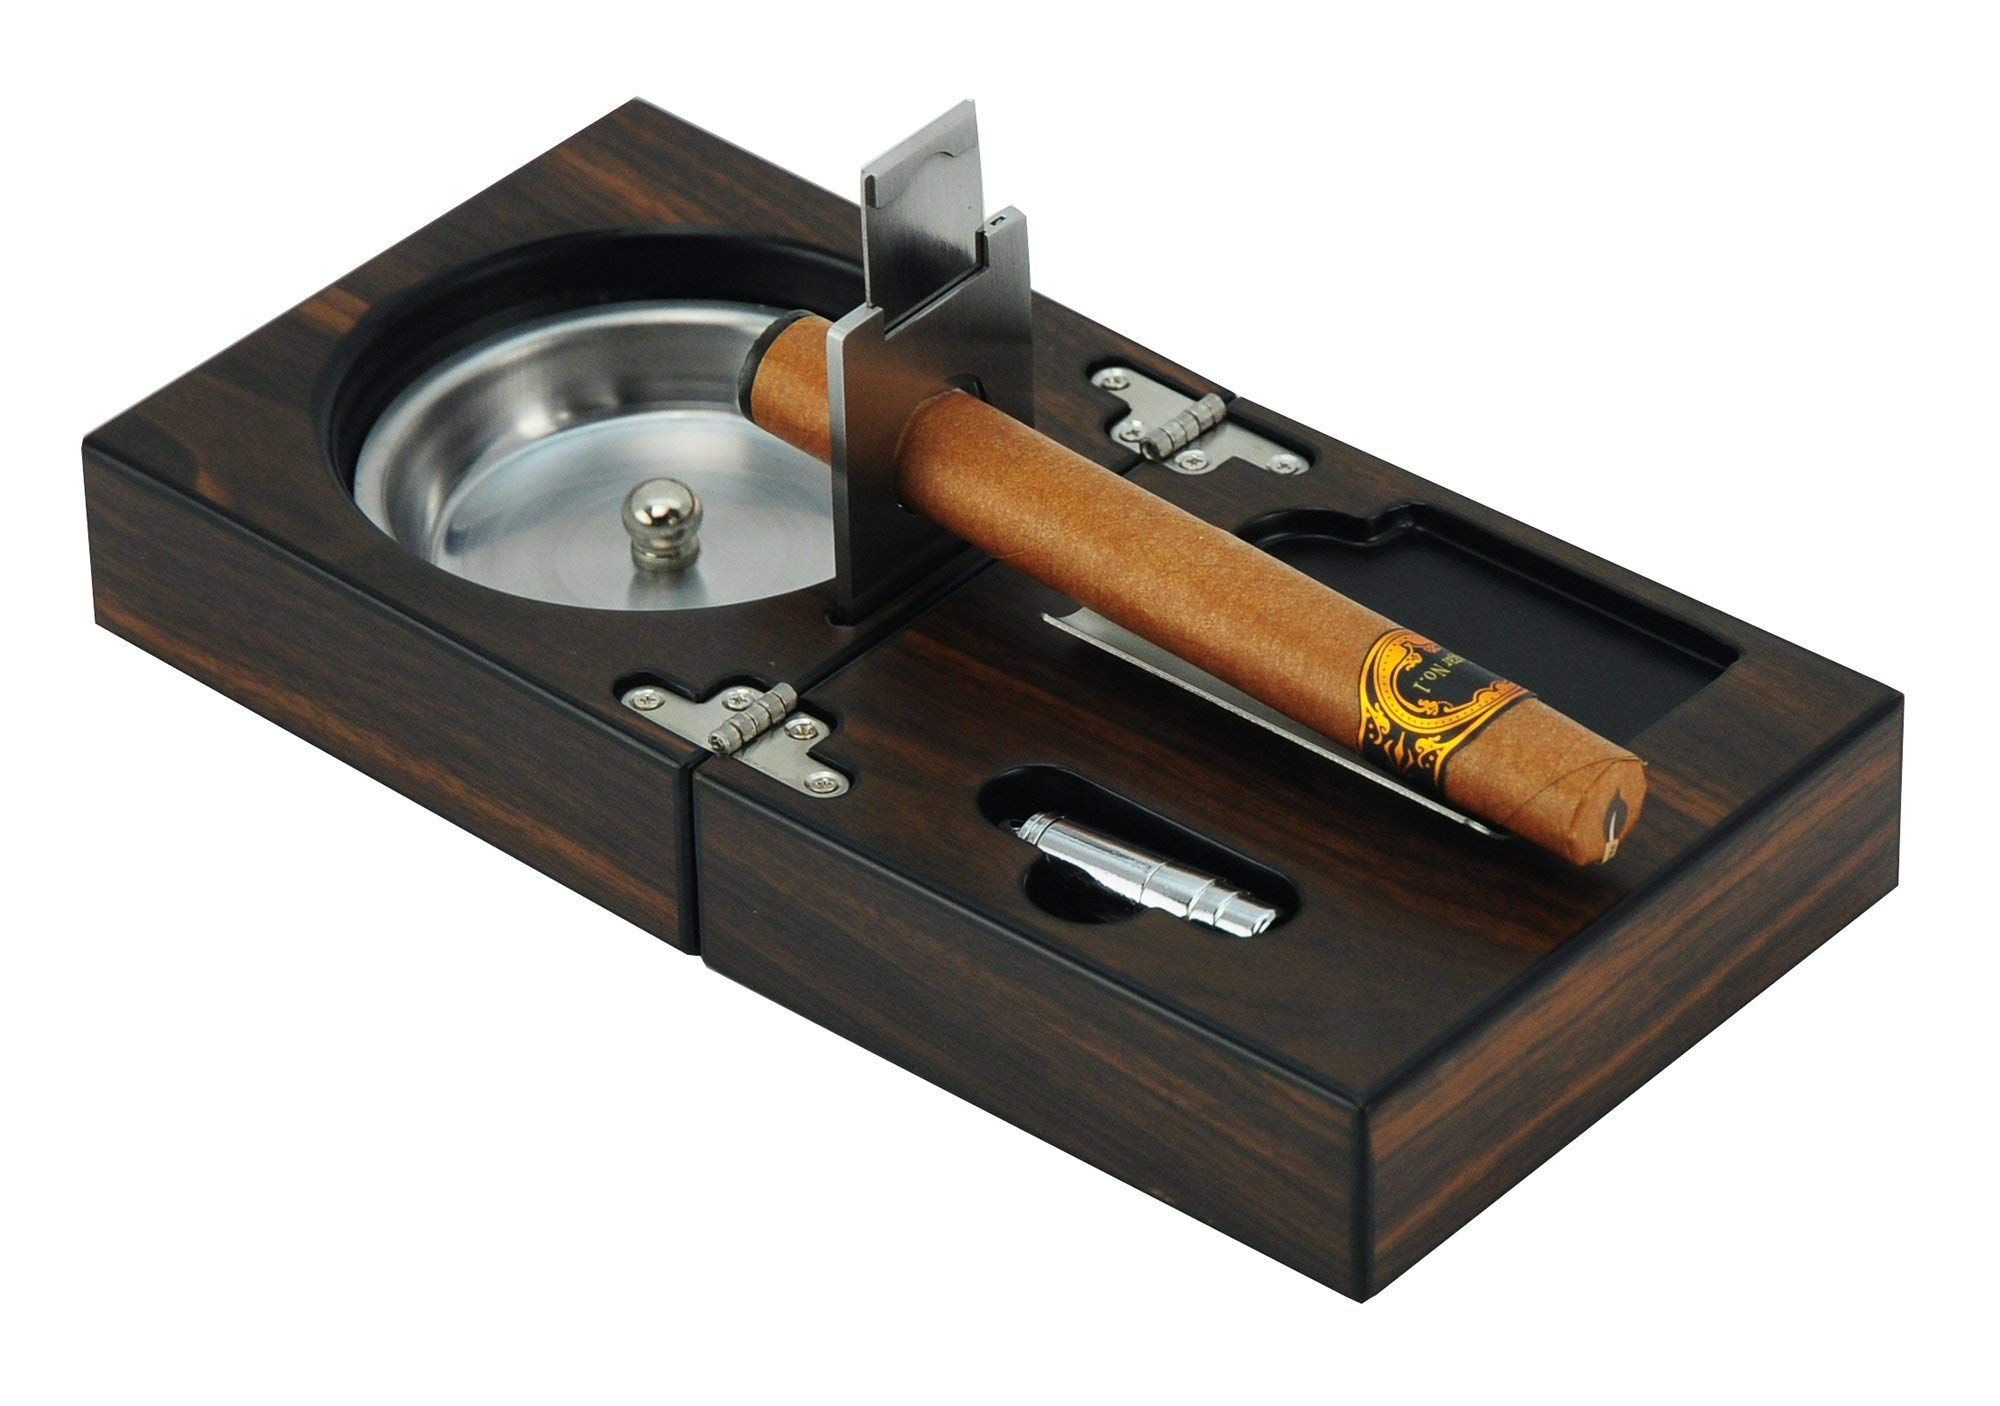 ORBITZ GEAR SIKARX - Extravaganza Collection - The Compact Cigar Ashtray Cigar Cutter Punch (4.75 x 4.75 x 2.8)